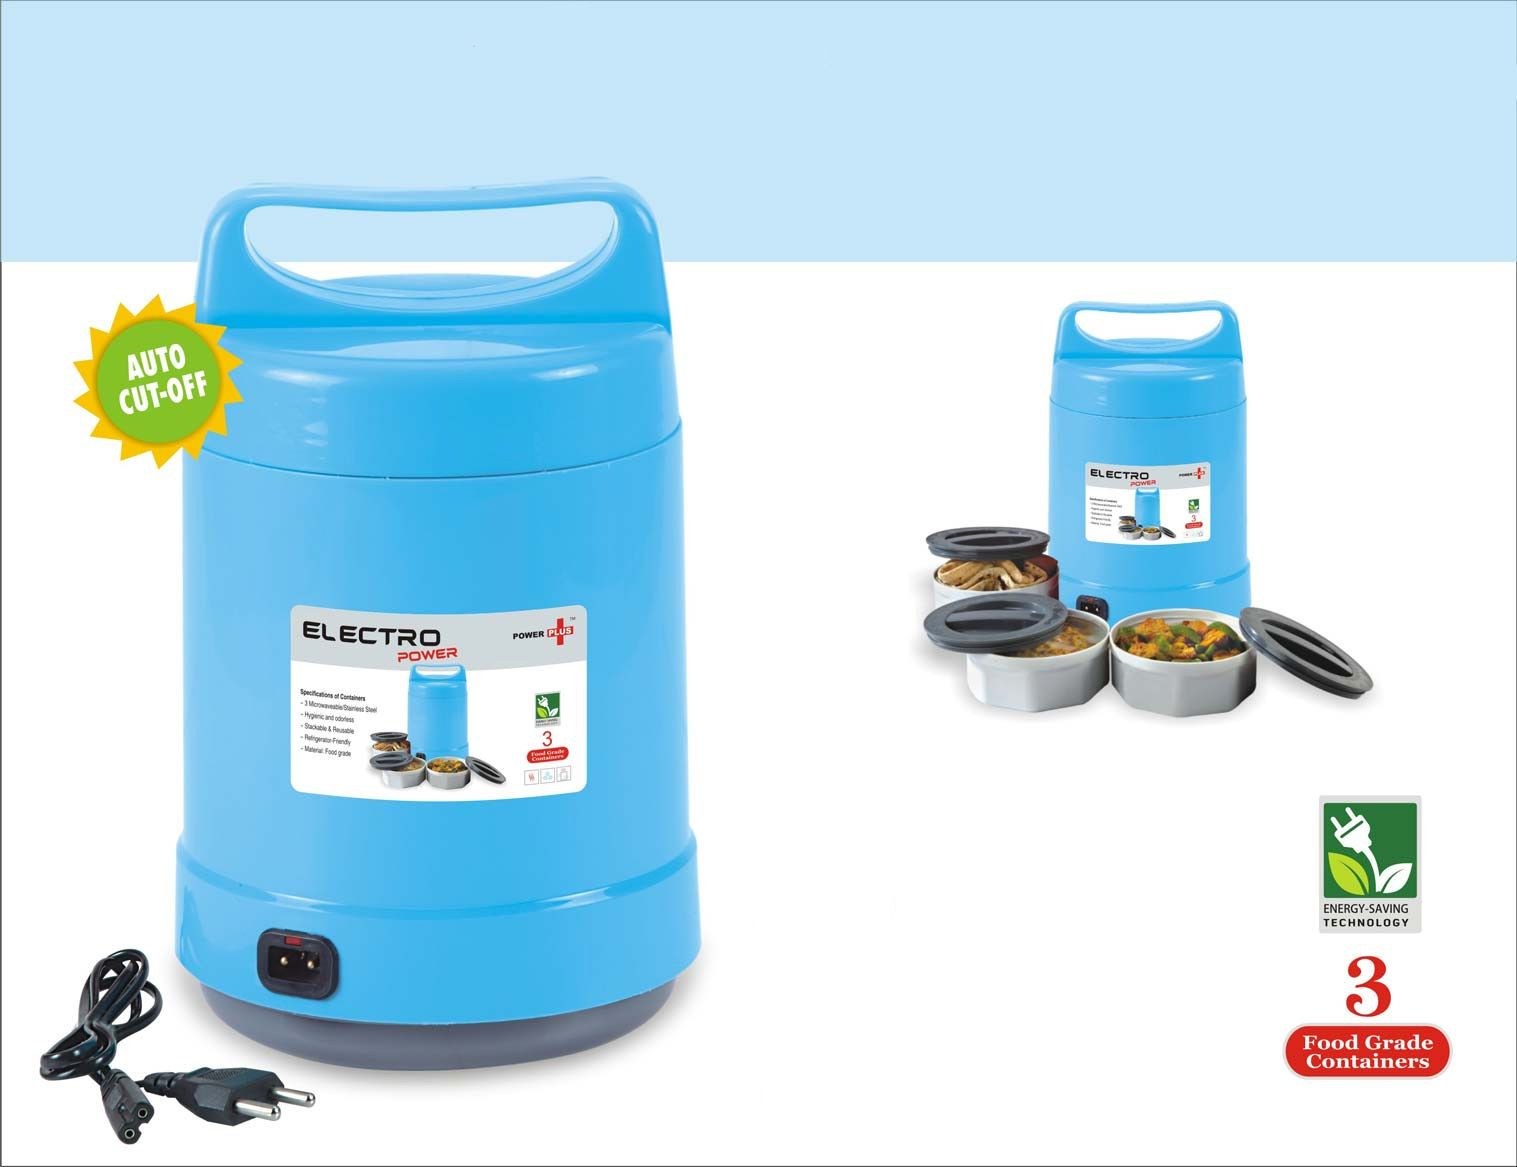 Power Plus Electro Power: Electric Lunch Box With Auto-Cut Function H103 Blue